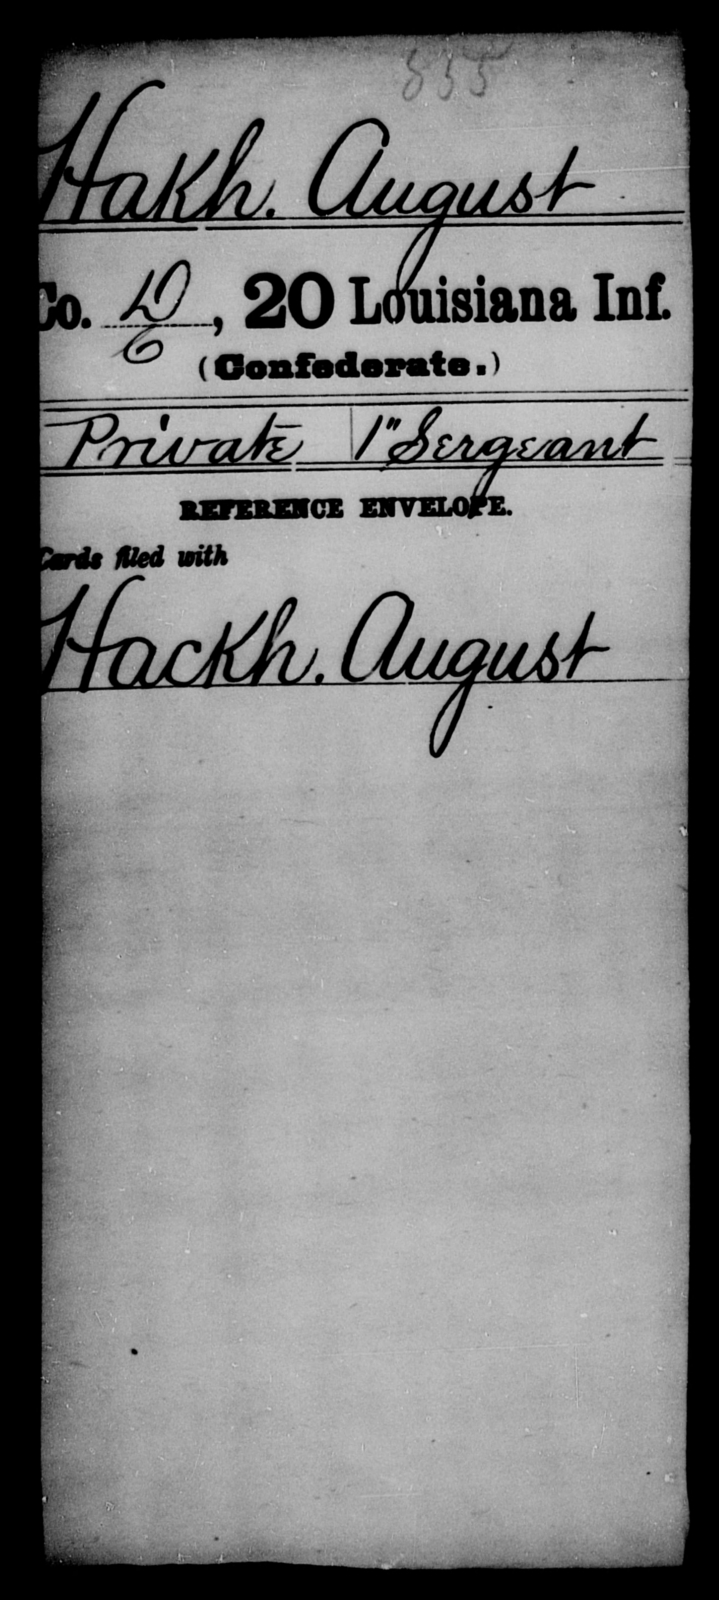 Hakh, August - Age [Blank], Year: [Blank] - Twentieth Infantry, E - Ha - Louisiana